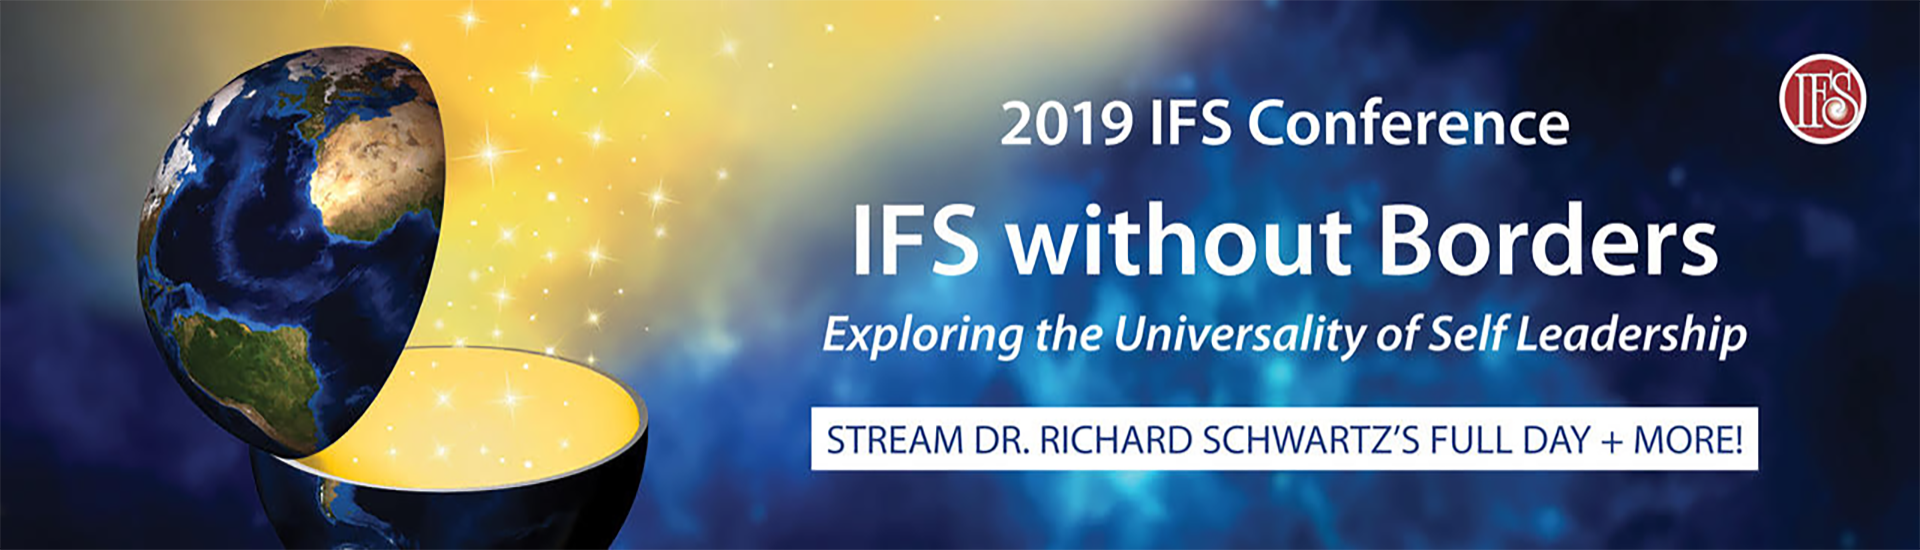 2019 IFS Conference Web Streaming